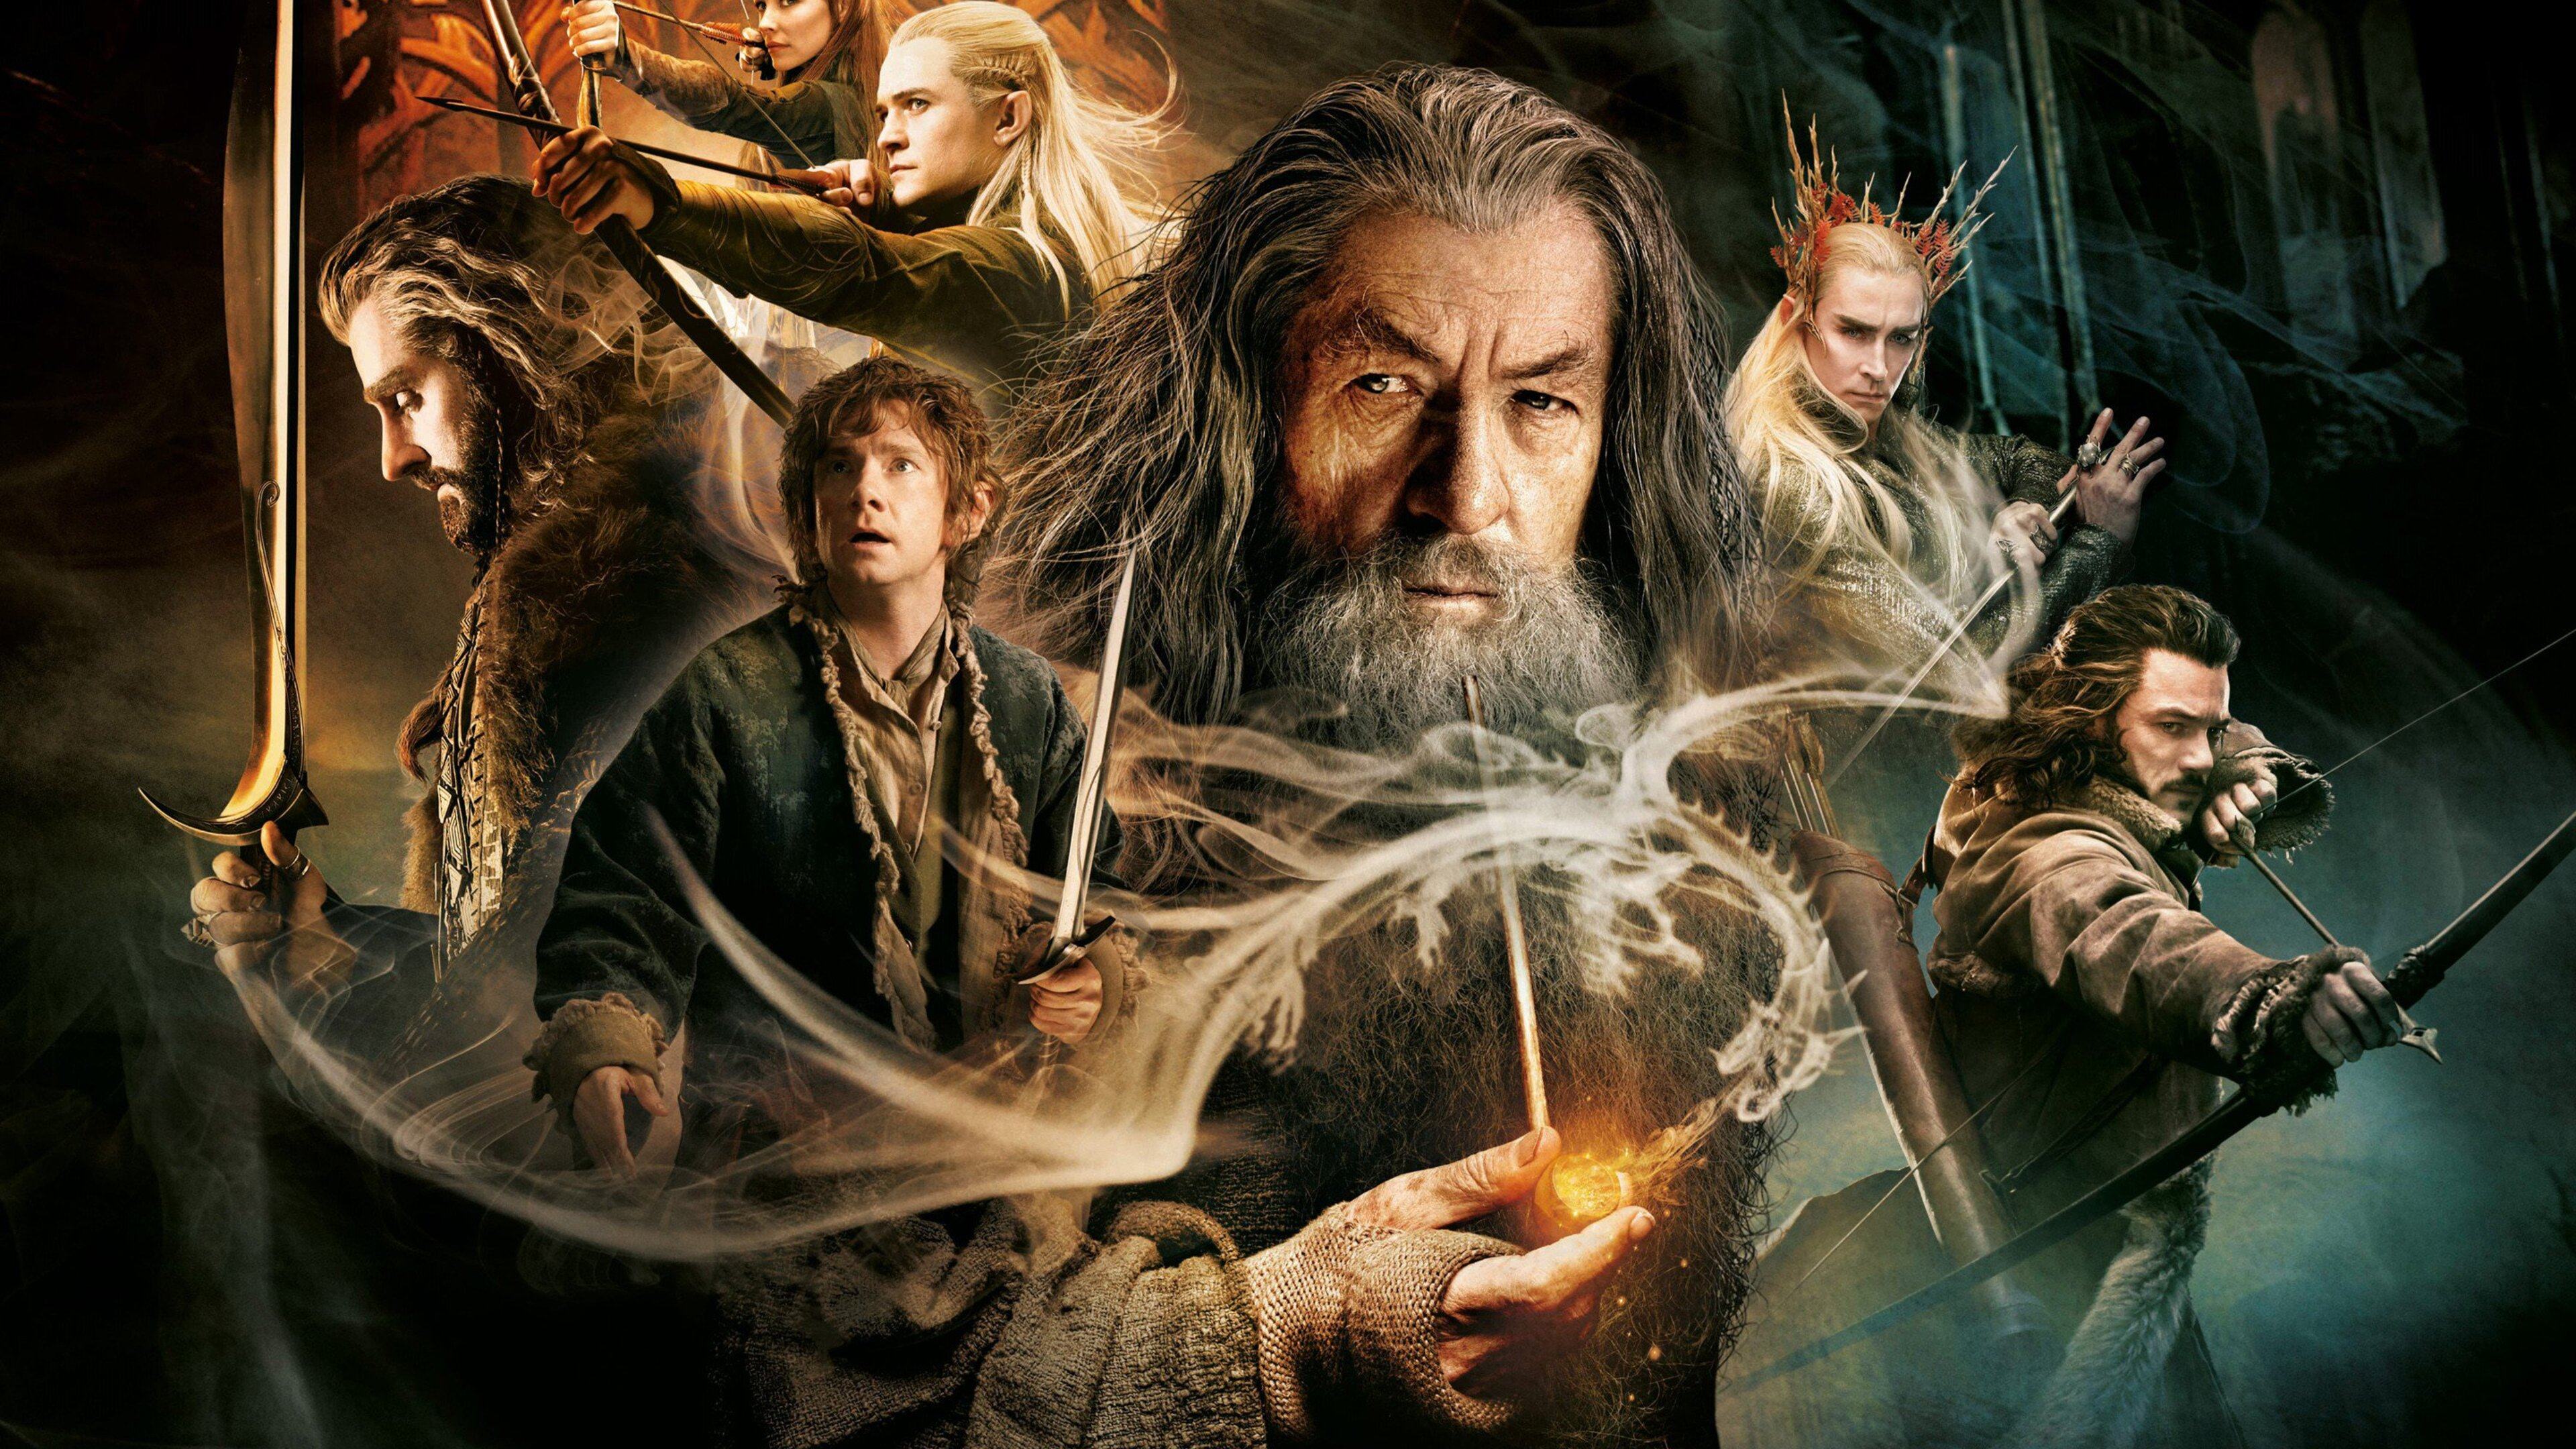 3840x2160 the hobbit the desolation of smaug 4k hd 4k wallpapers